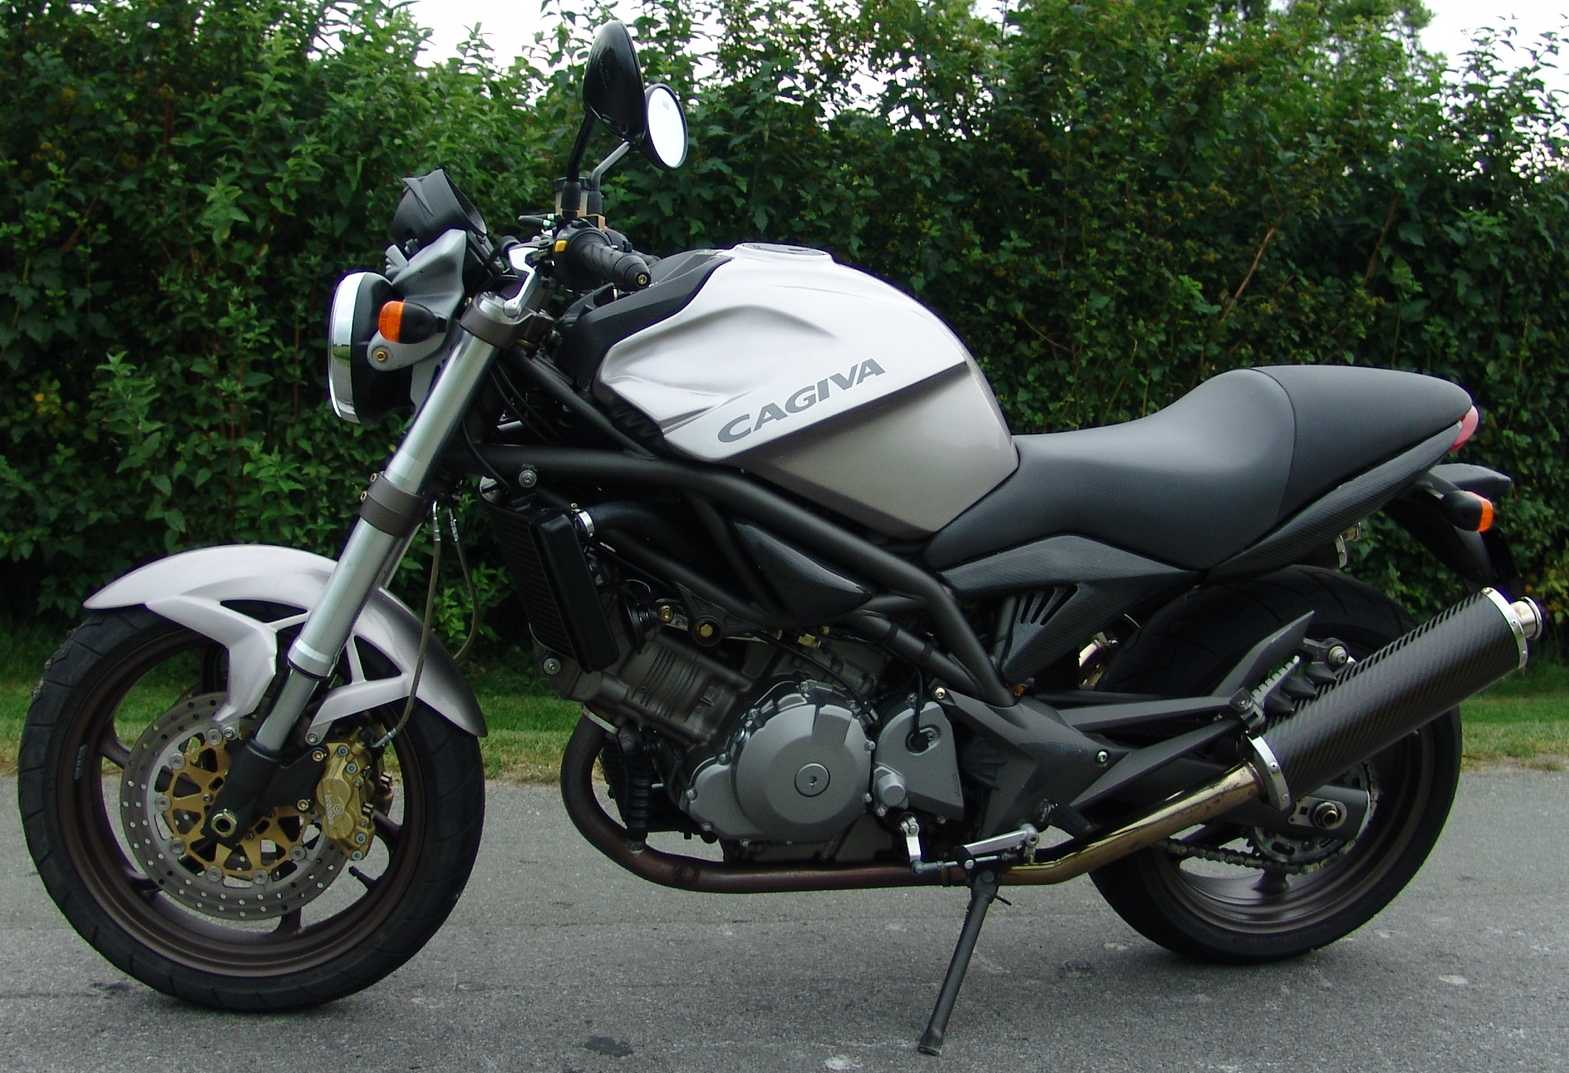 Cagiva Xtra Raptor 1000 images #68020